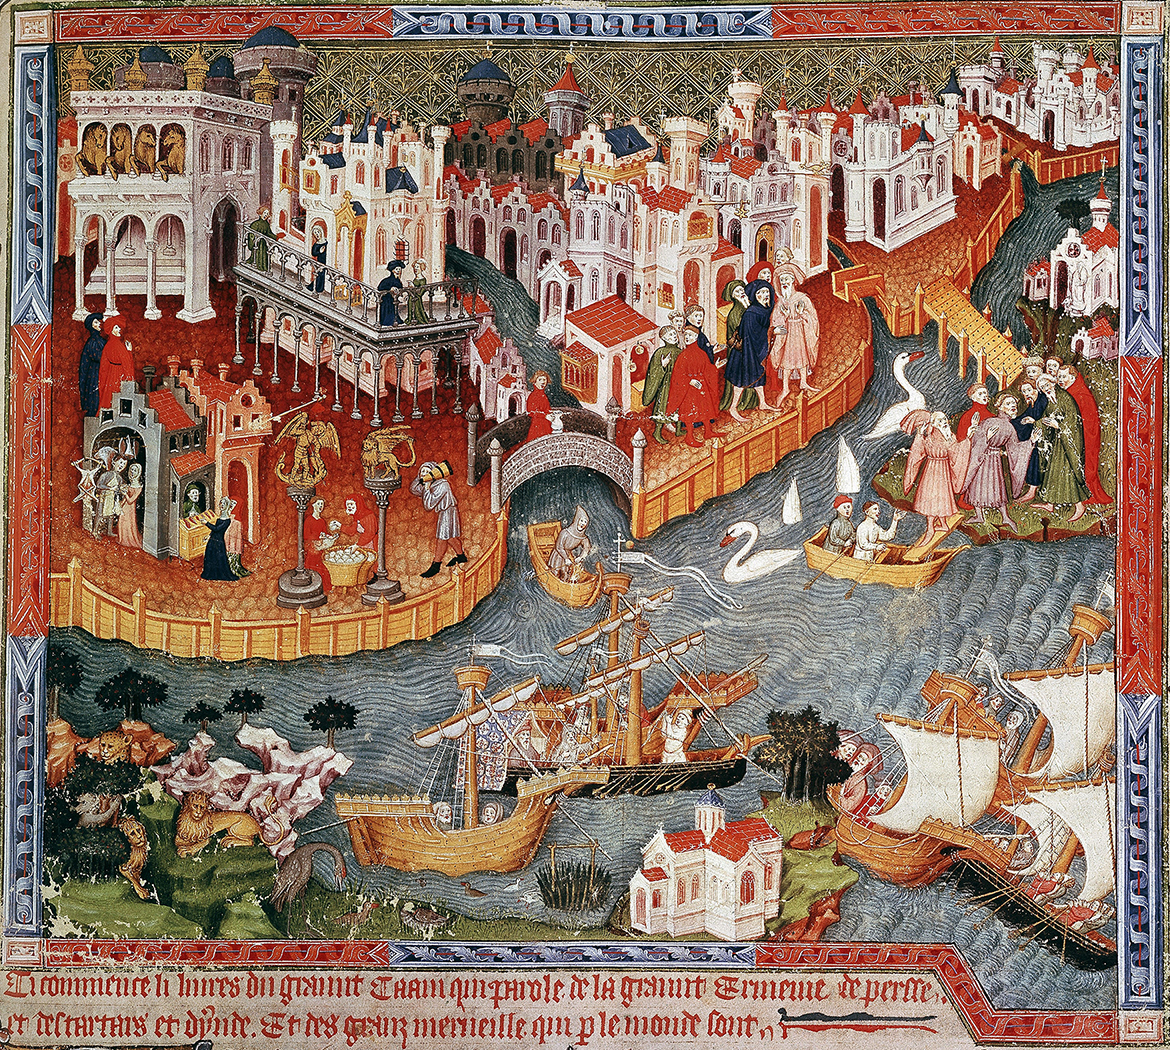 Painted engraving of Venice with buildings, canals, and ships